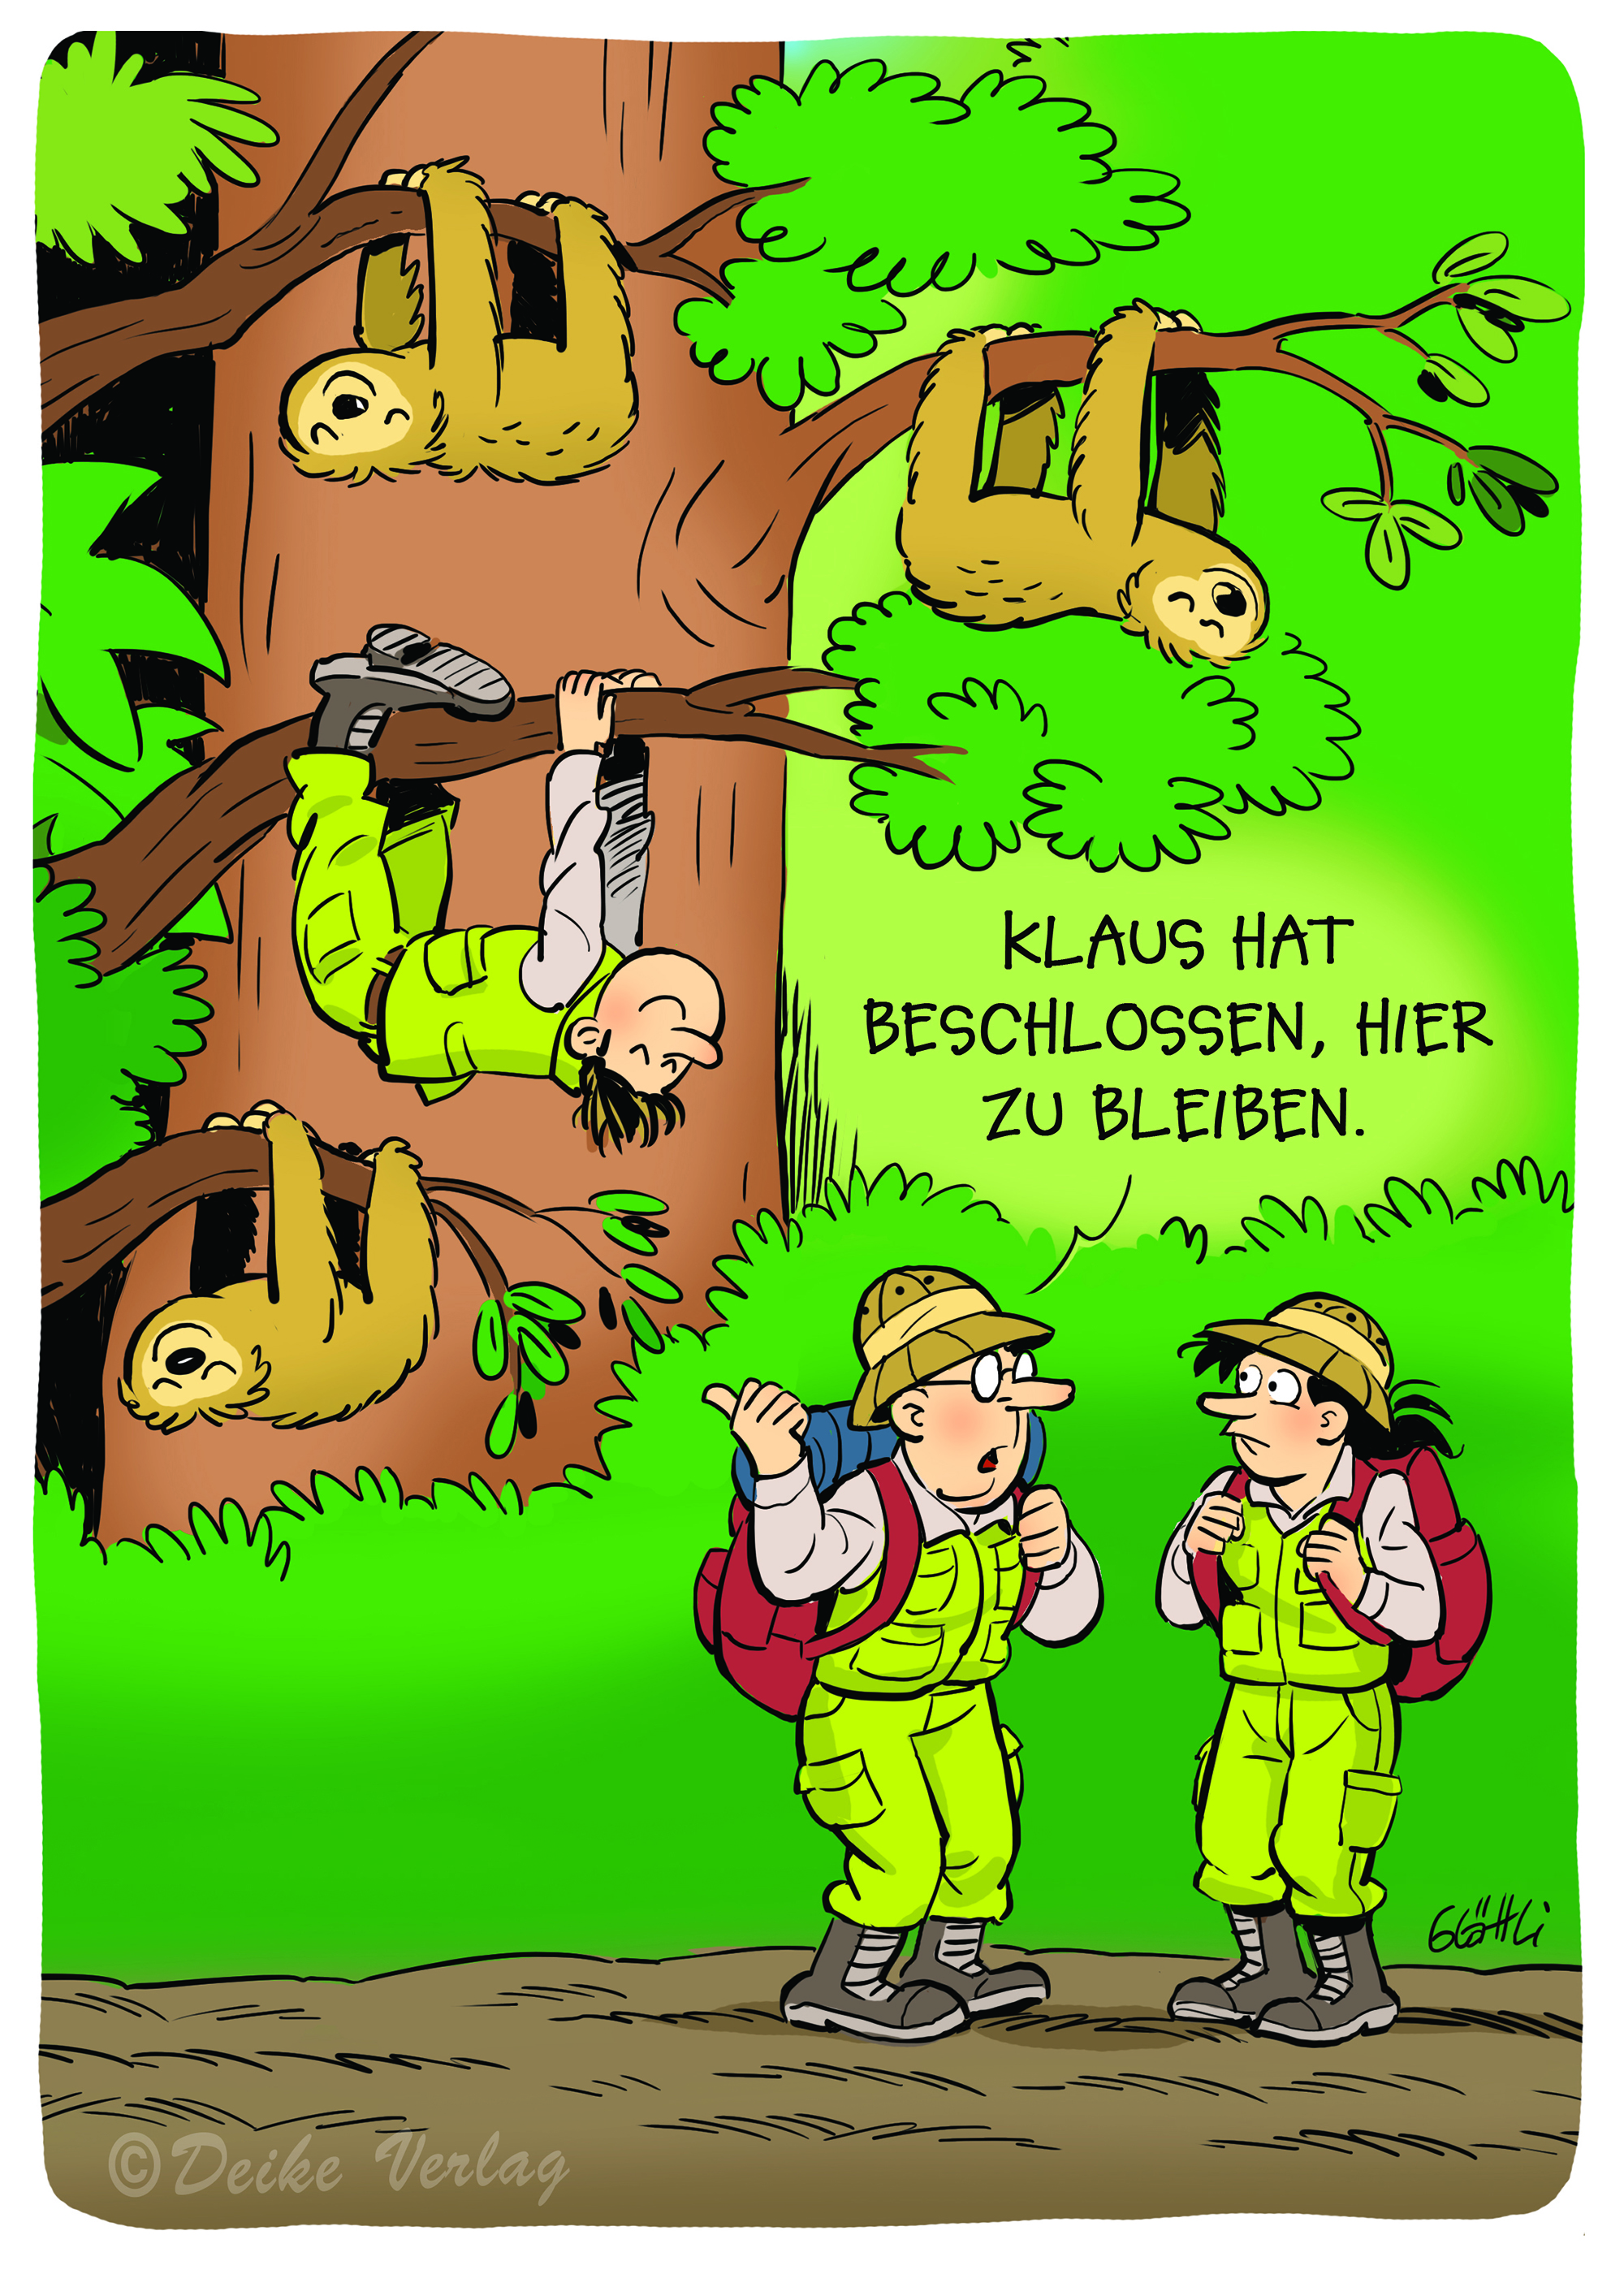 Naturforscher_Cartoon_Faultiere_watermark.jpg